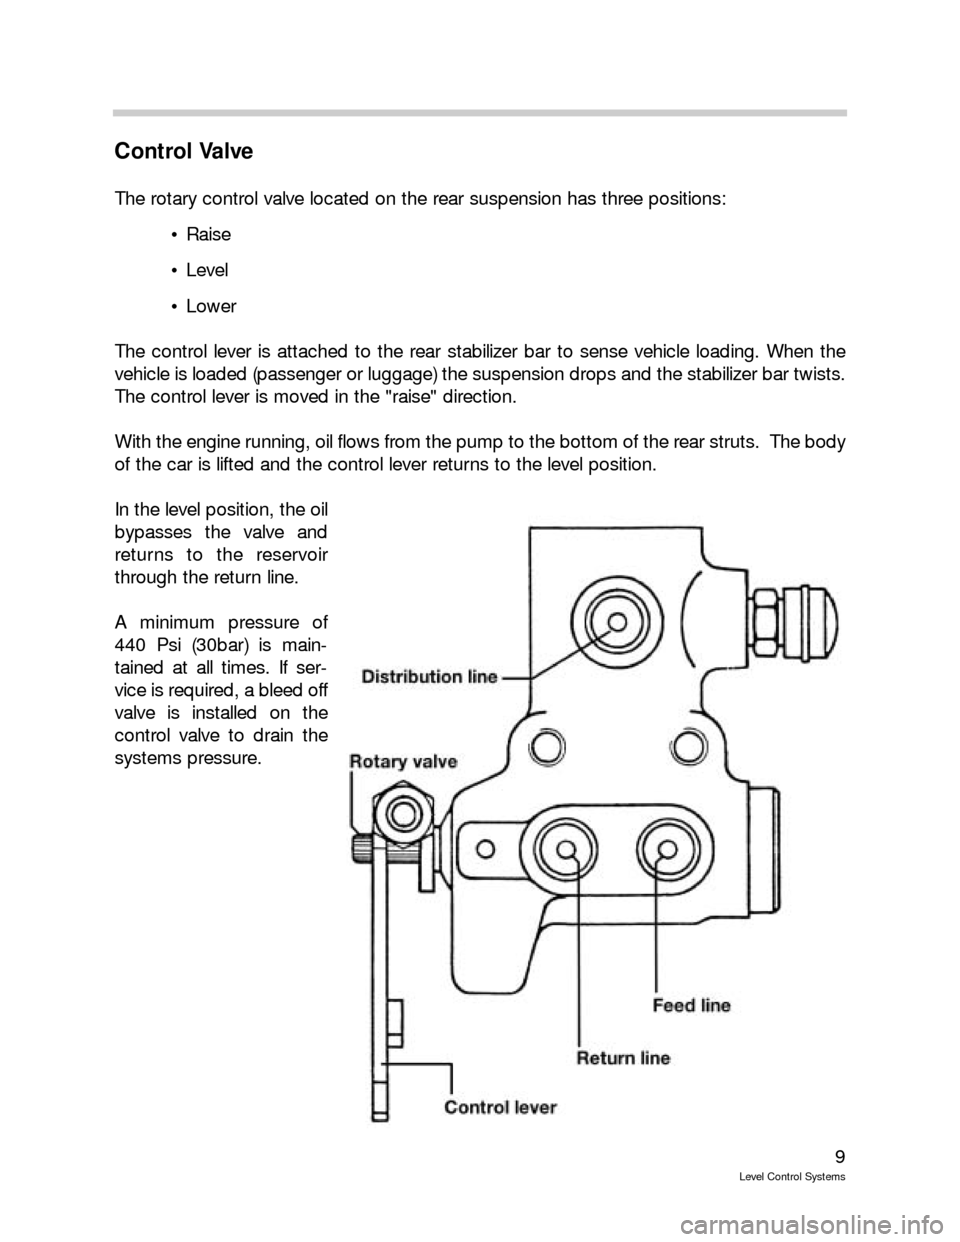 BMW 525I TOURING 1989 E34 Level Control System Manual, Page 9